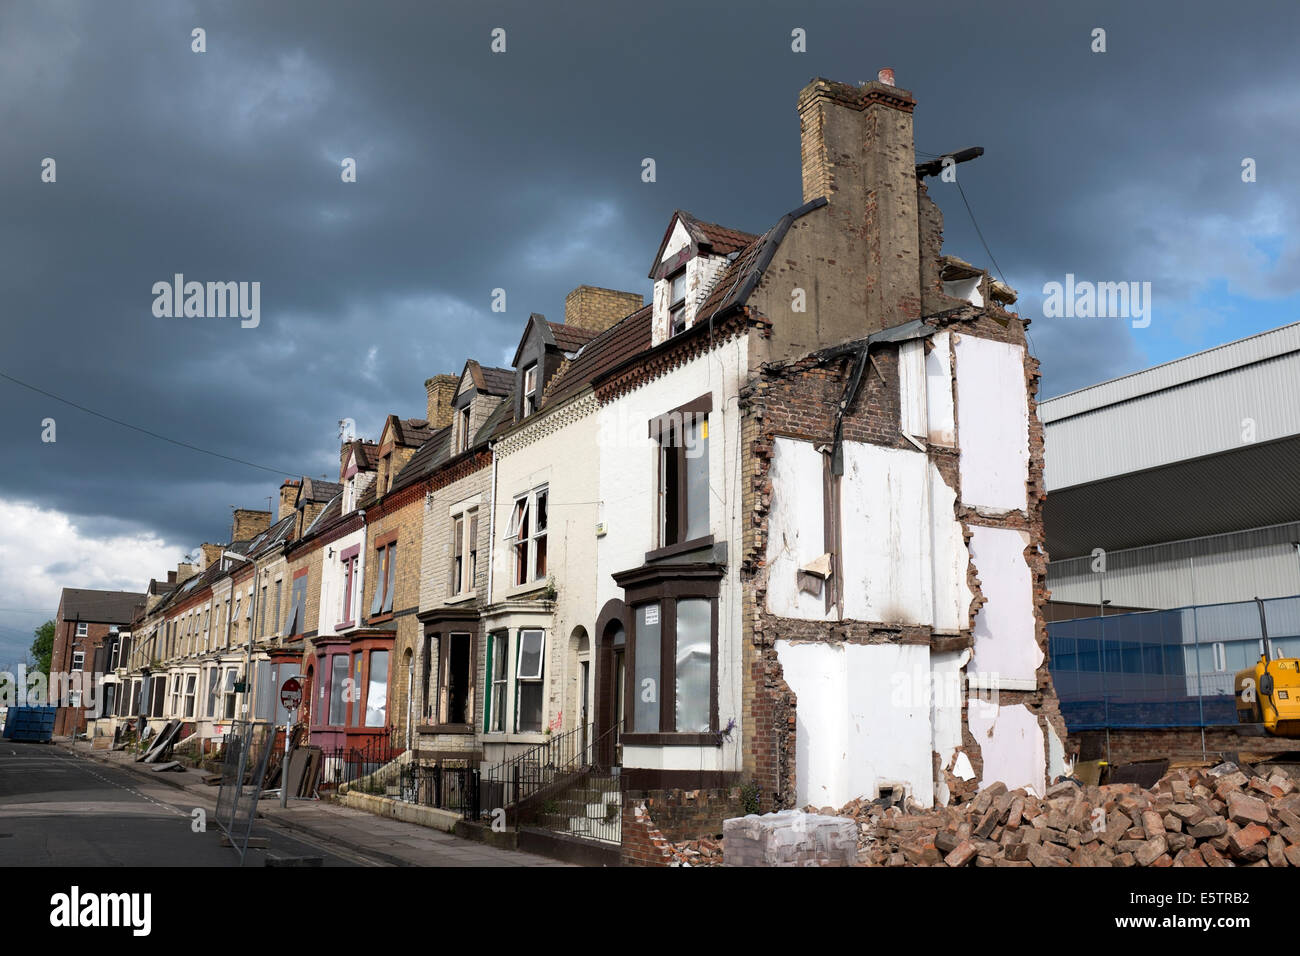 Old terraced houses demolition being demolished urban clearance - Stock Image